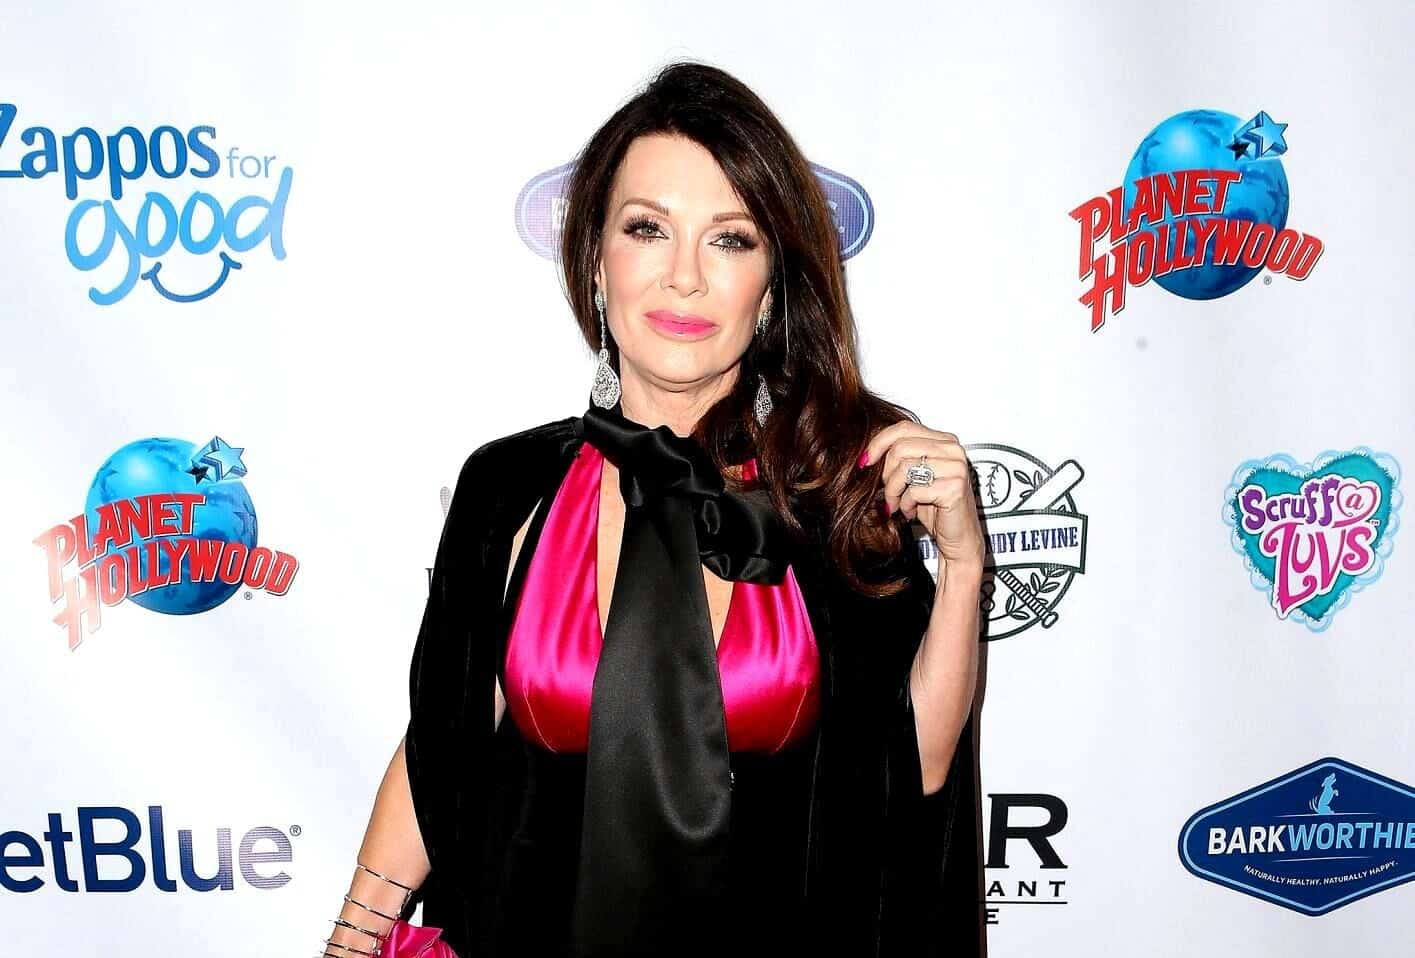 "Lisa Vanderpump Confirms Villa Blanca is Closing After 12 Years and Explains the Reason Behind the Closure, Plus the Ex RHOBH Star Admits She's Going Through a ""Sad Time"""